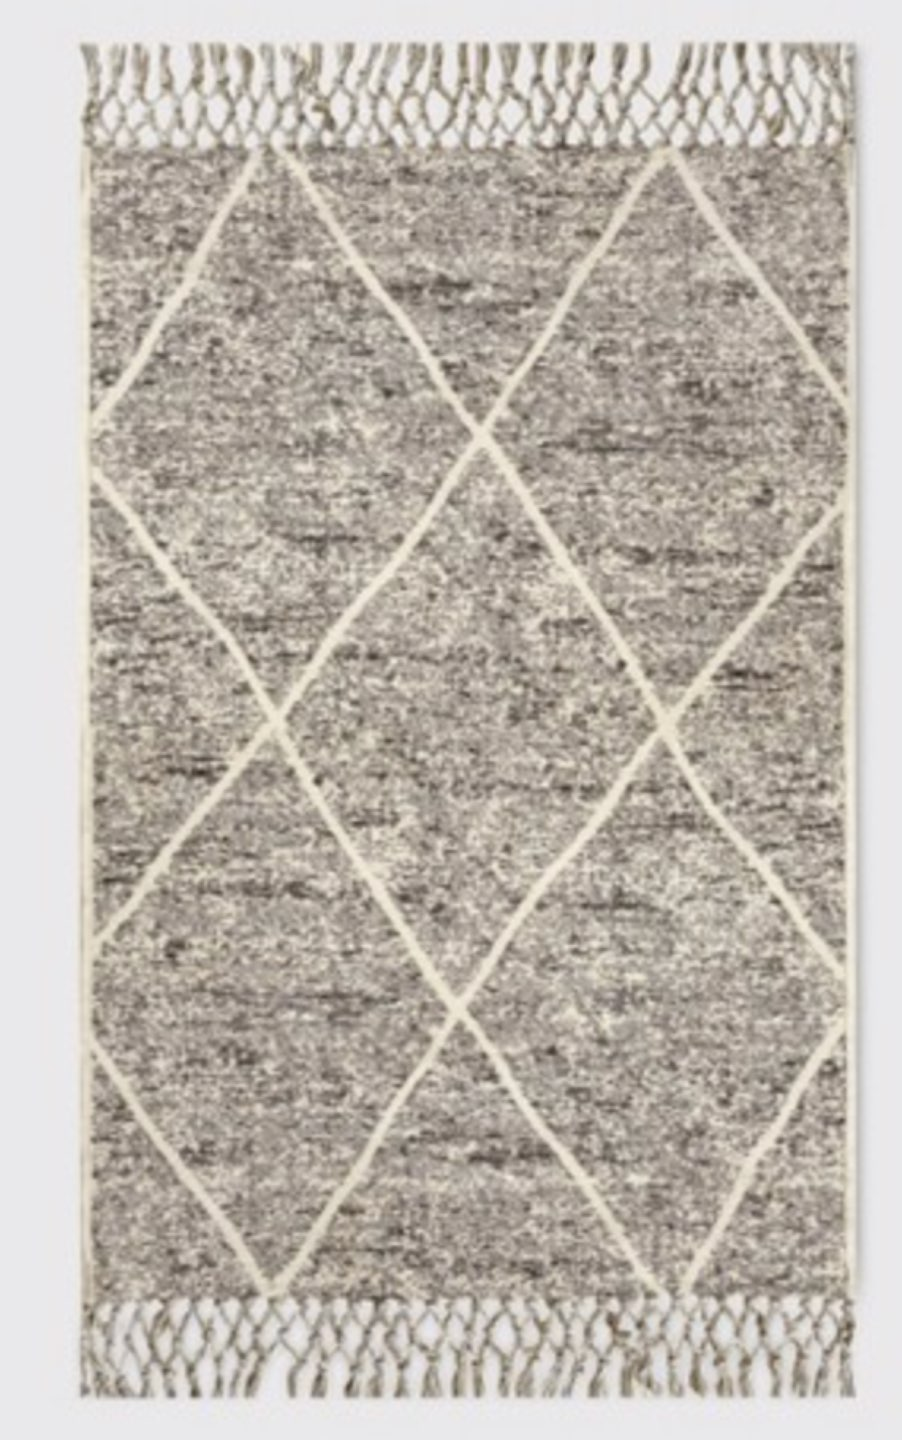 Top 10 Best Area Rugs for your Space from Amazon and Target - I'm Fixin' To - @mbg0112 | Top 6 Best Area Rugs for your Space from Amazon and Target by popular lifestyle blog, I'm Fixin' To: image of an Opalhouse Desert Hatch Outdoor Rug.